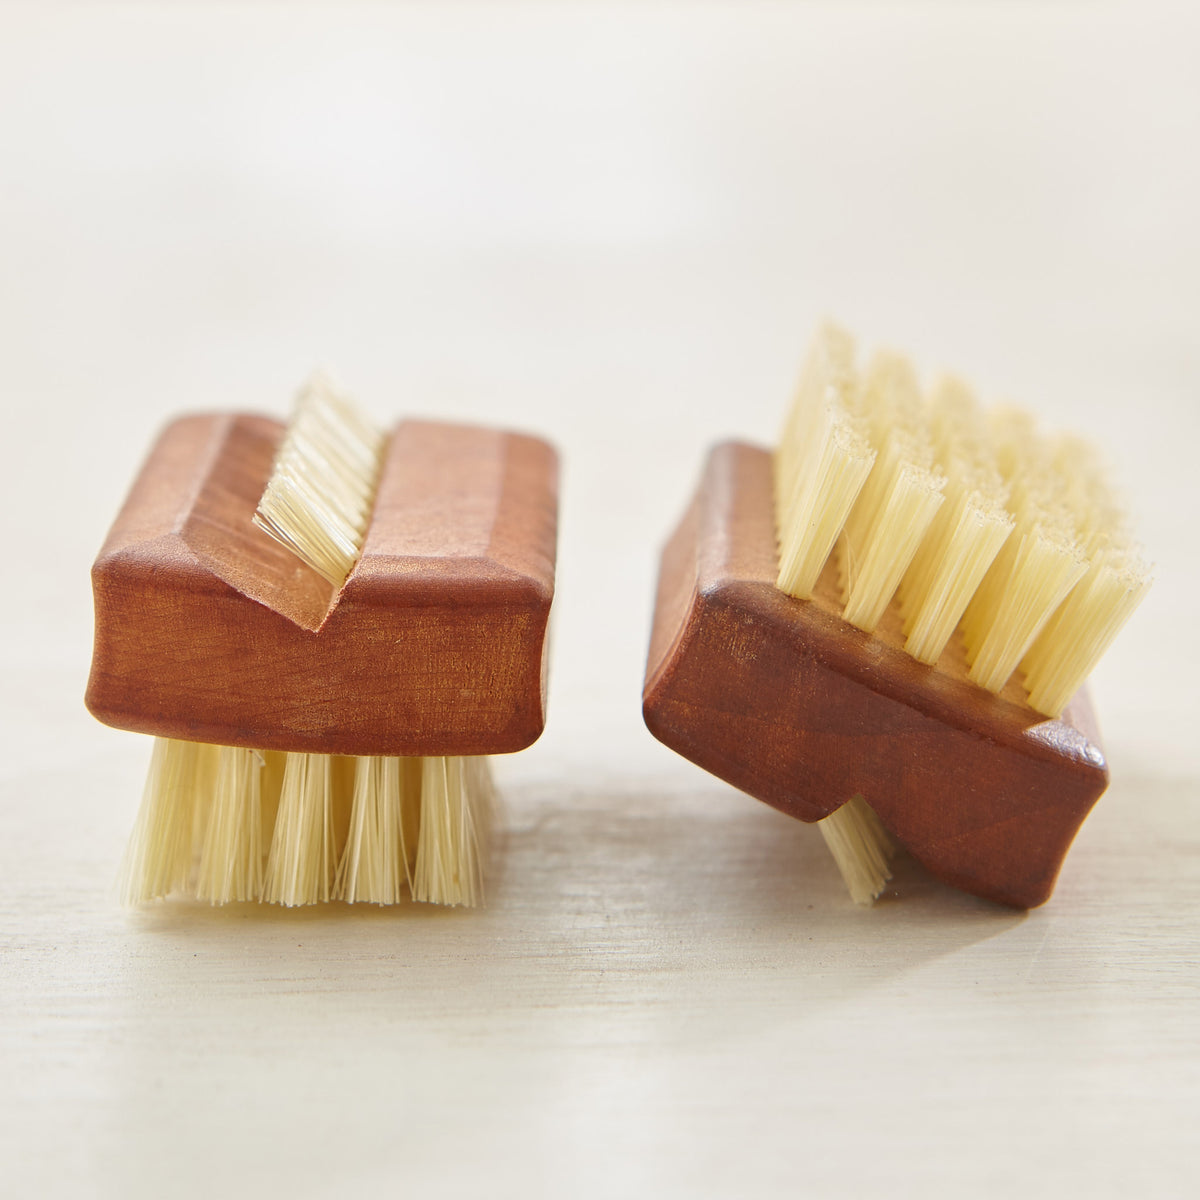 HANDCRAFTED GERMAN NAIL BRUSHES